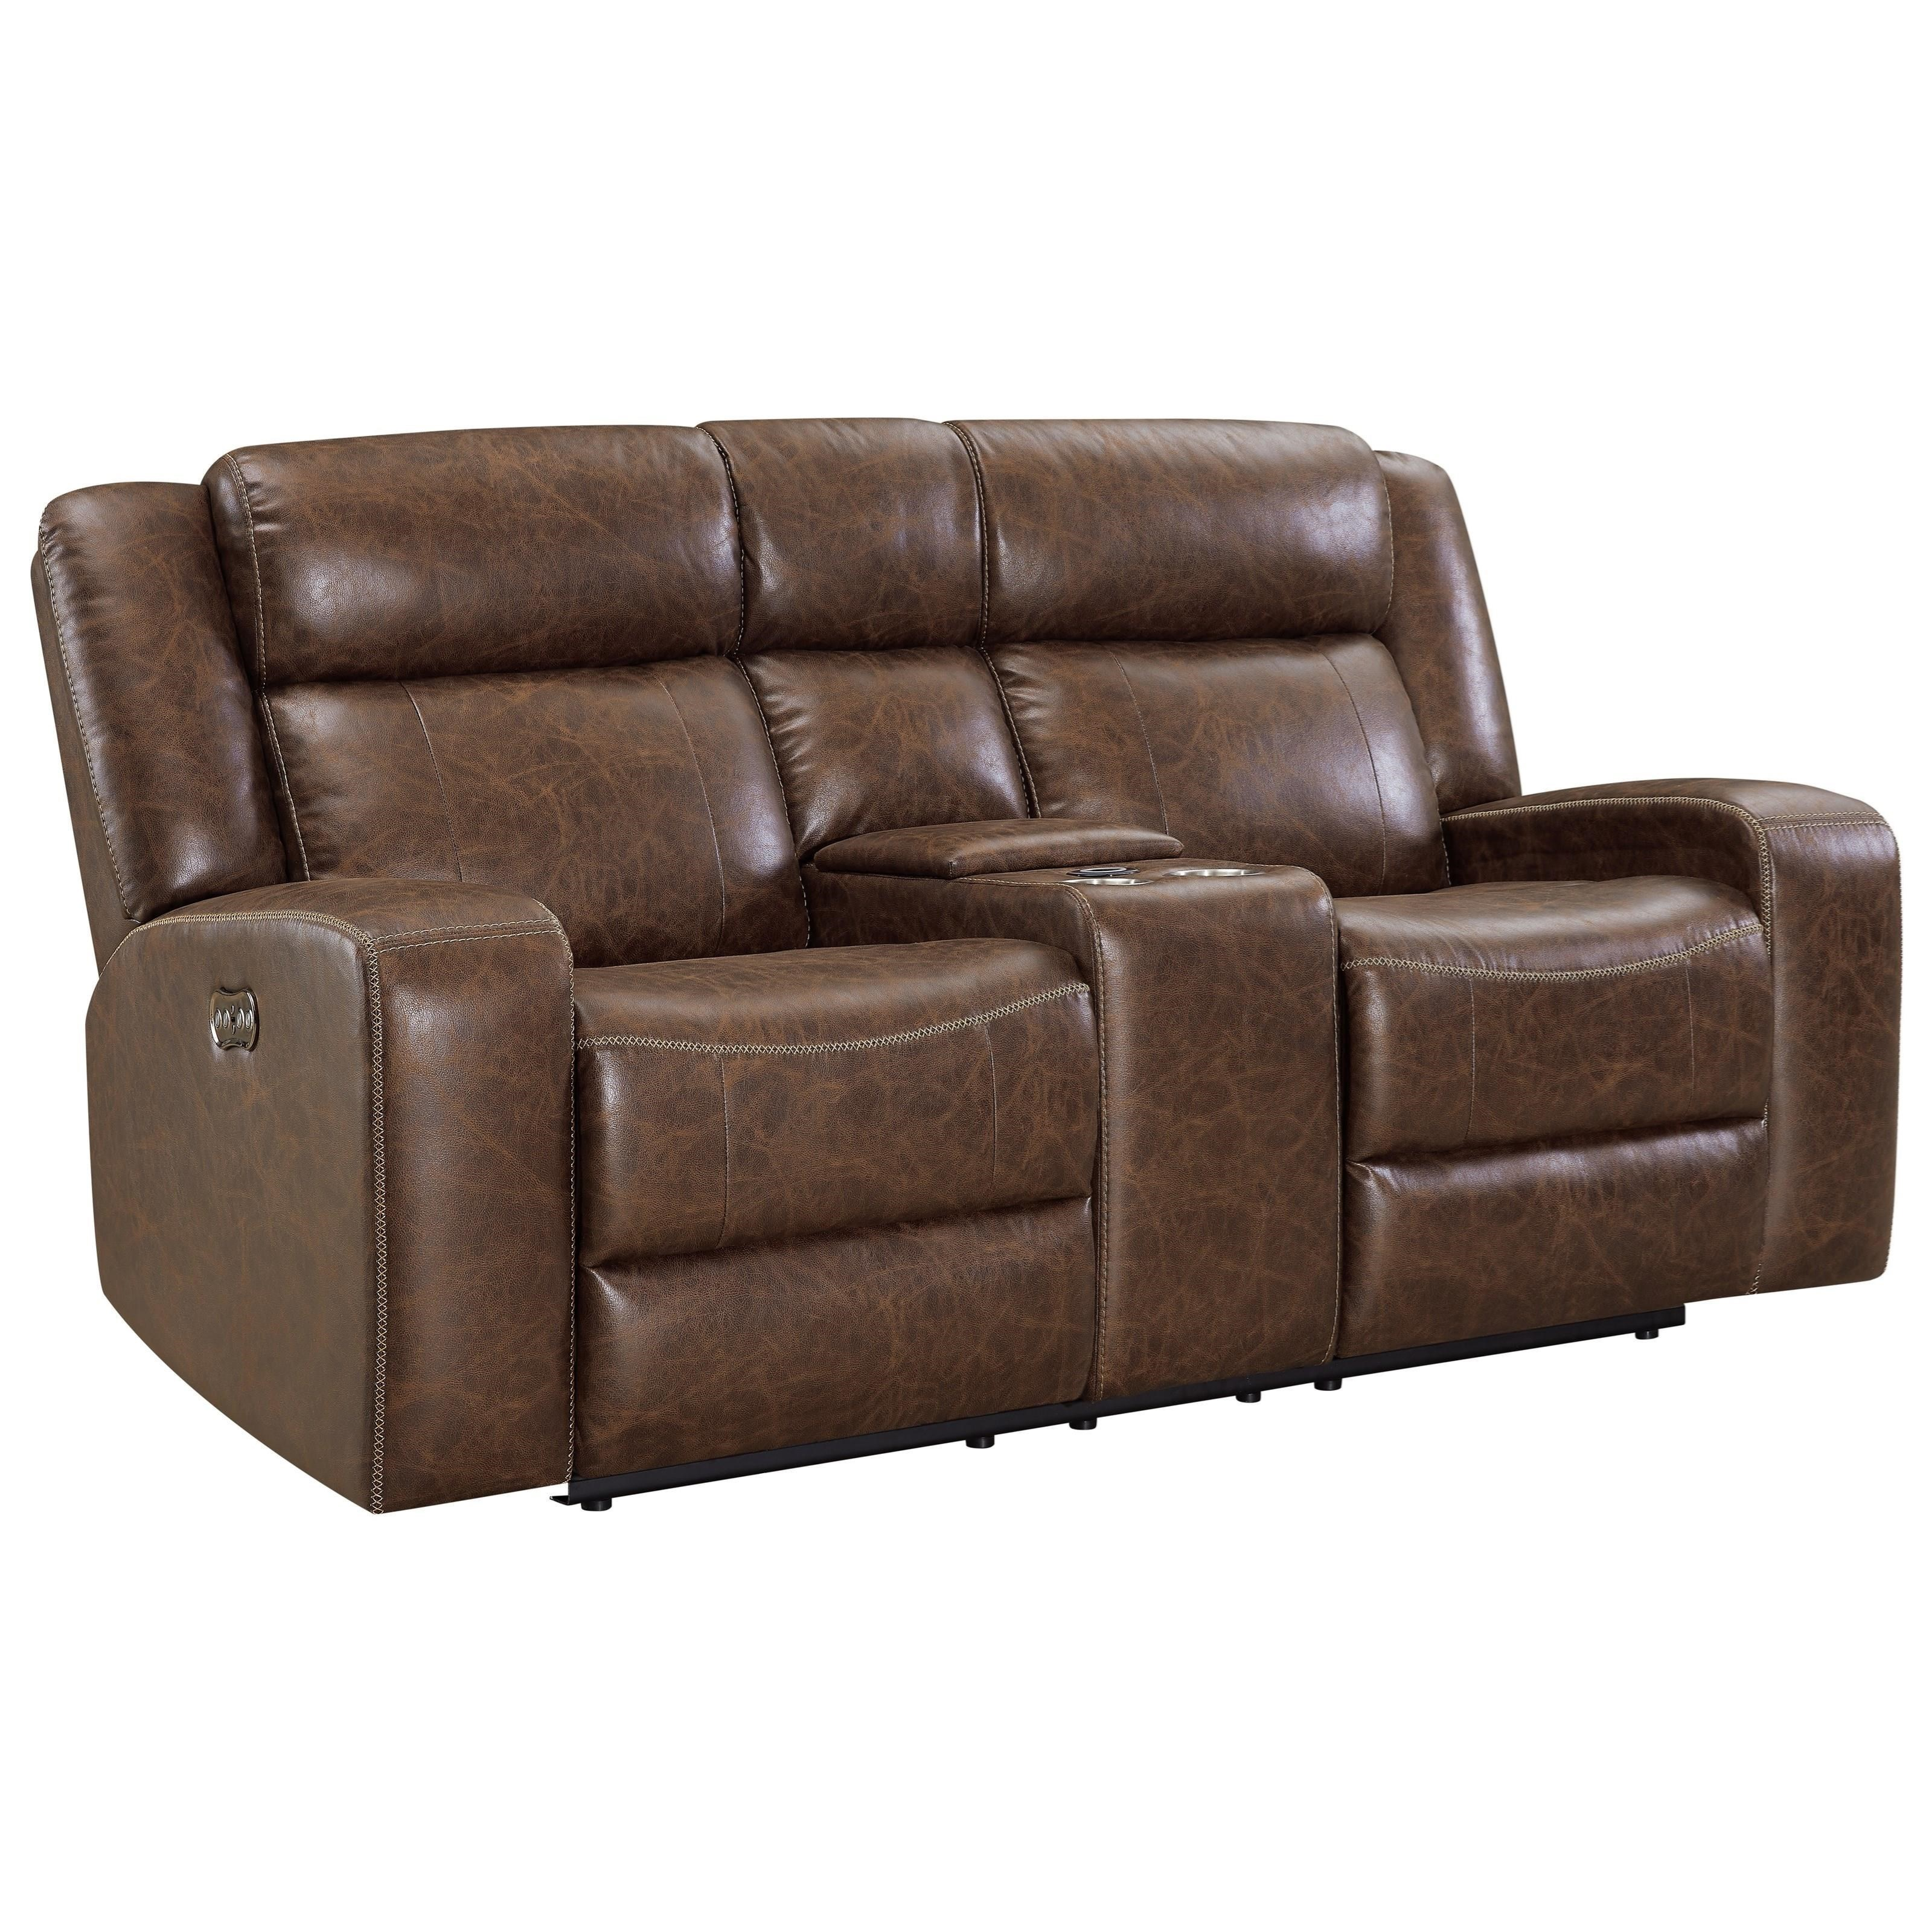 Atticus Dual Recliner Console Loveseat by New Classic at Rife's Home Furniture